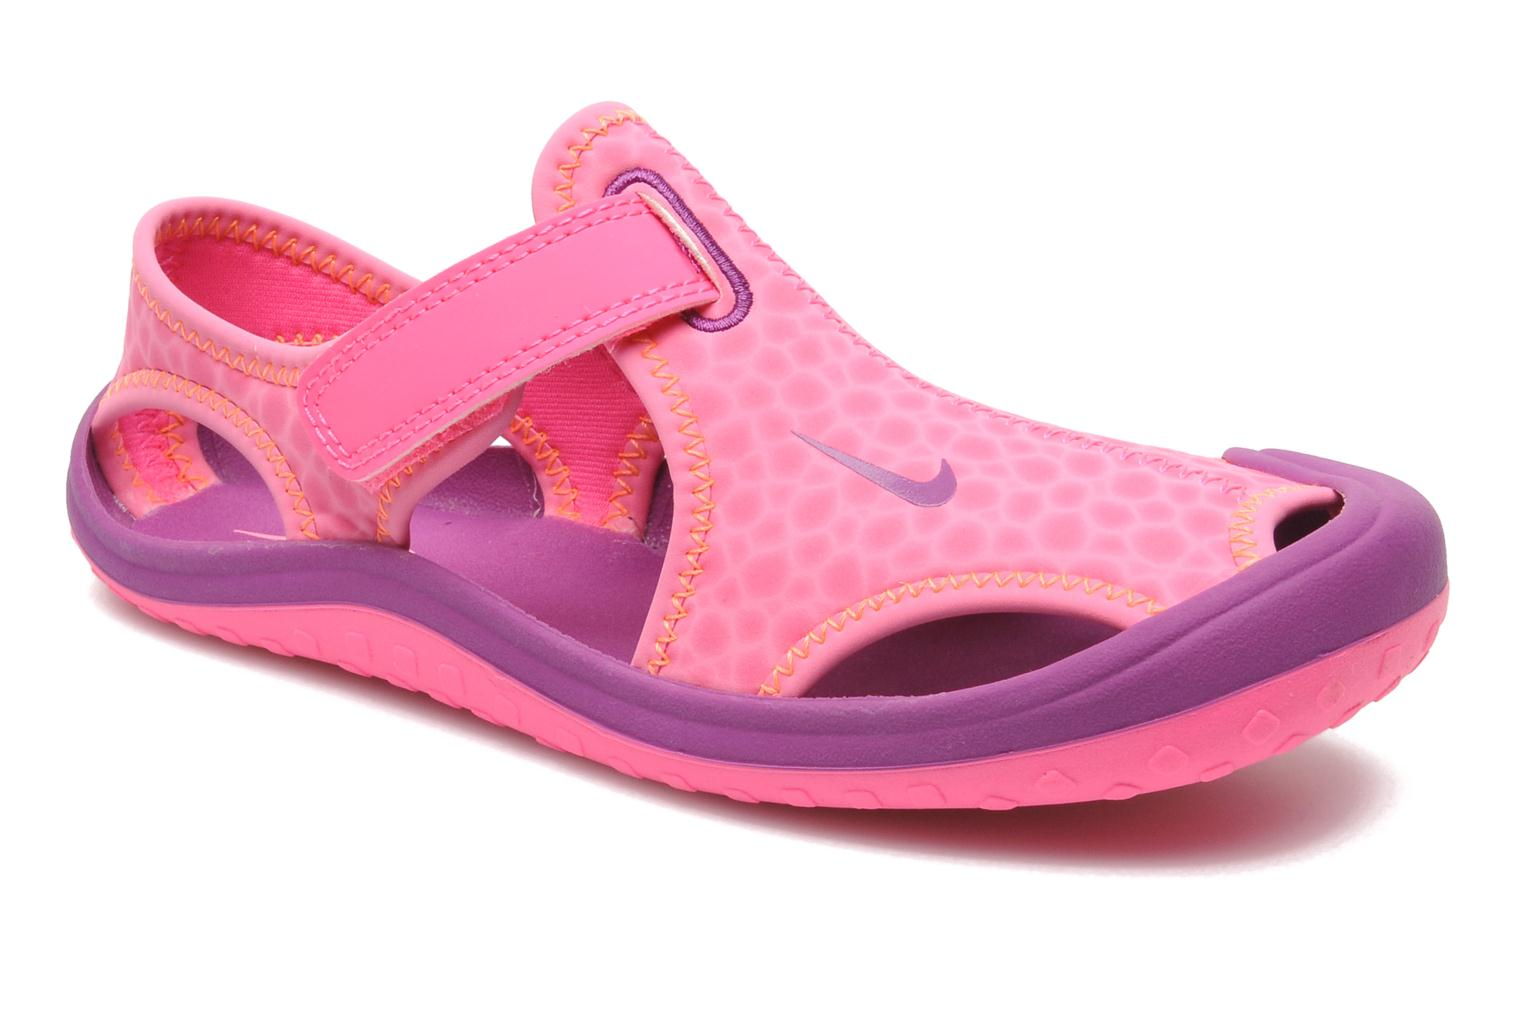 Sandalen Sunray Protect (PS) by Nike